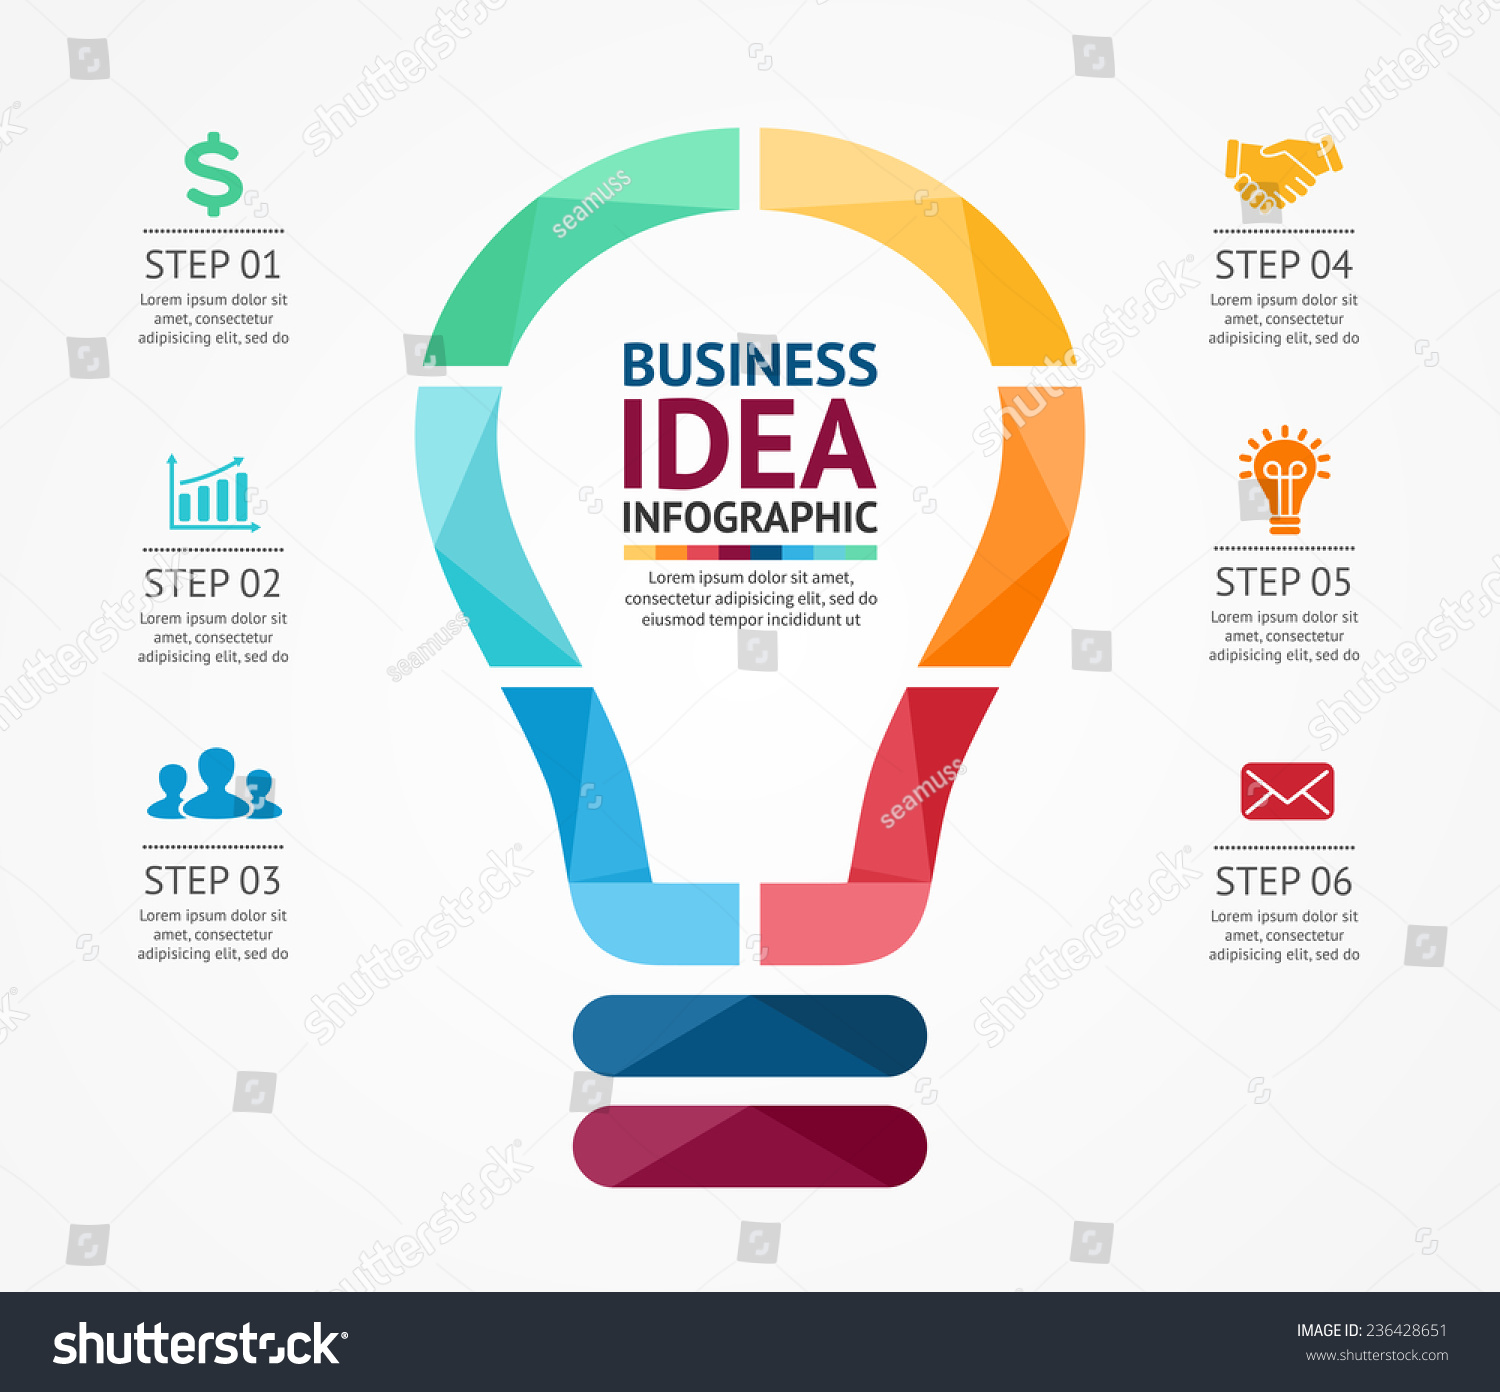 Image Result For Business Idea Brainstorming Template